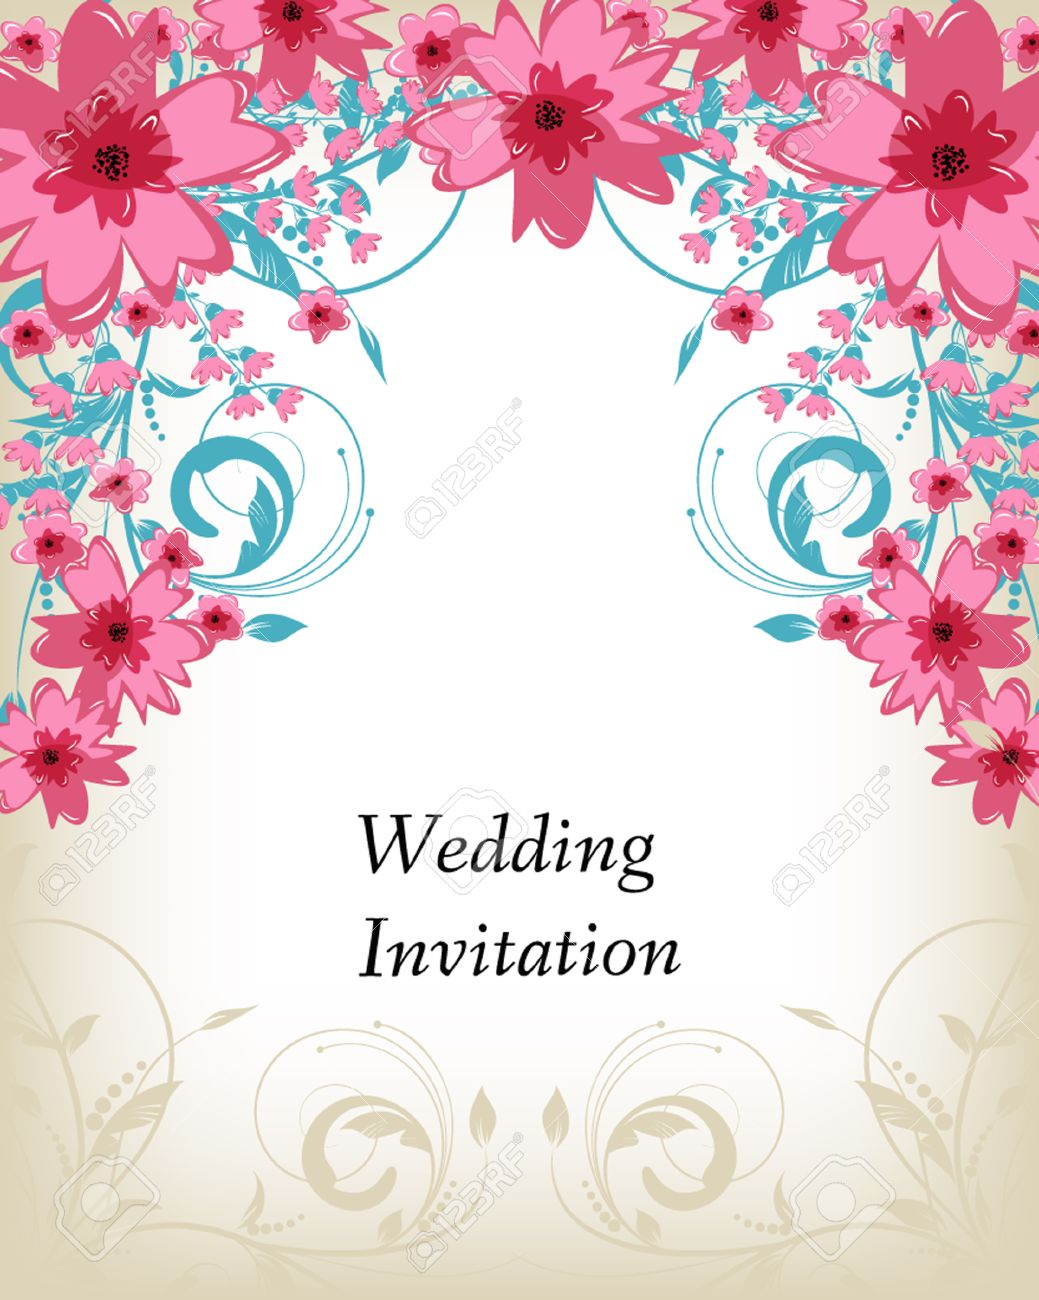 Wedding Invitation Card Flowers Abstract Colorful Background